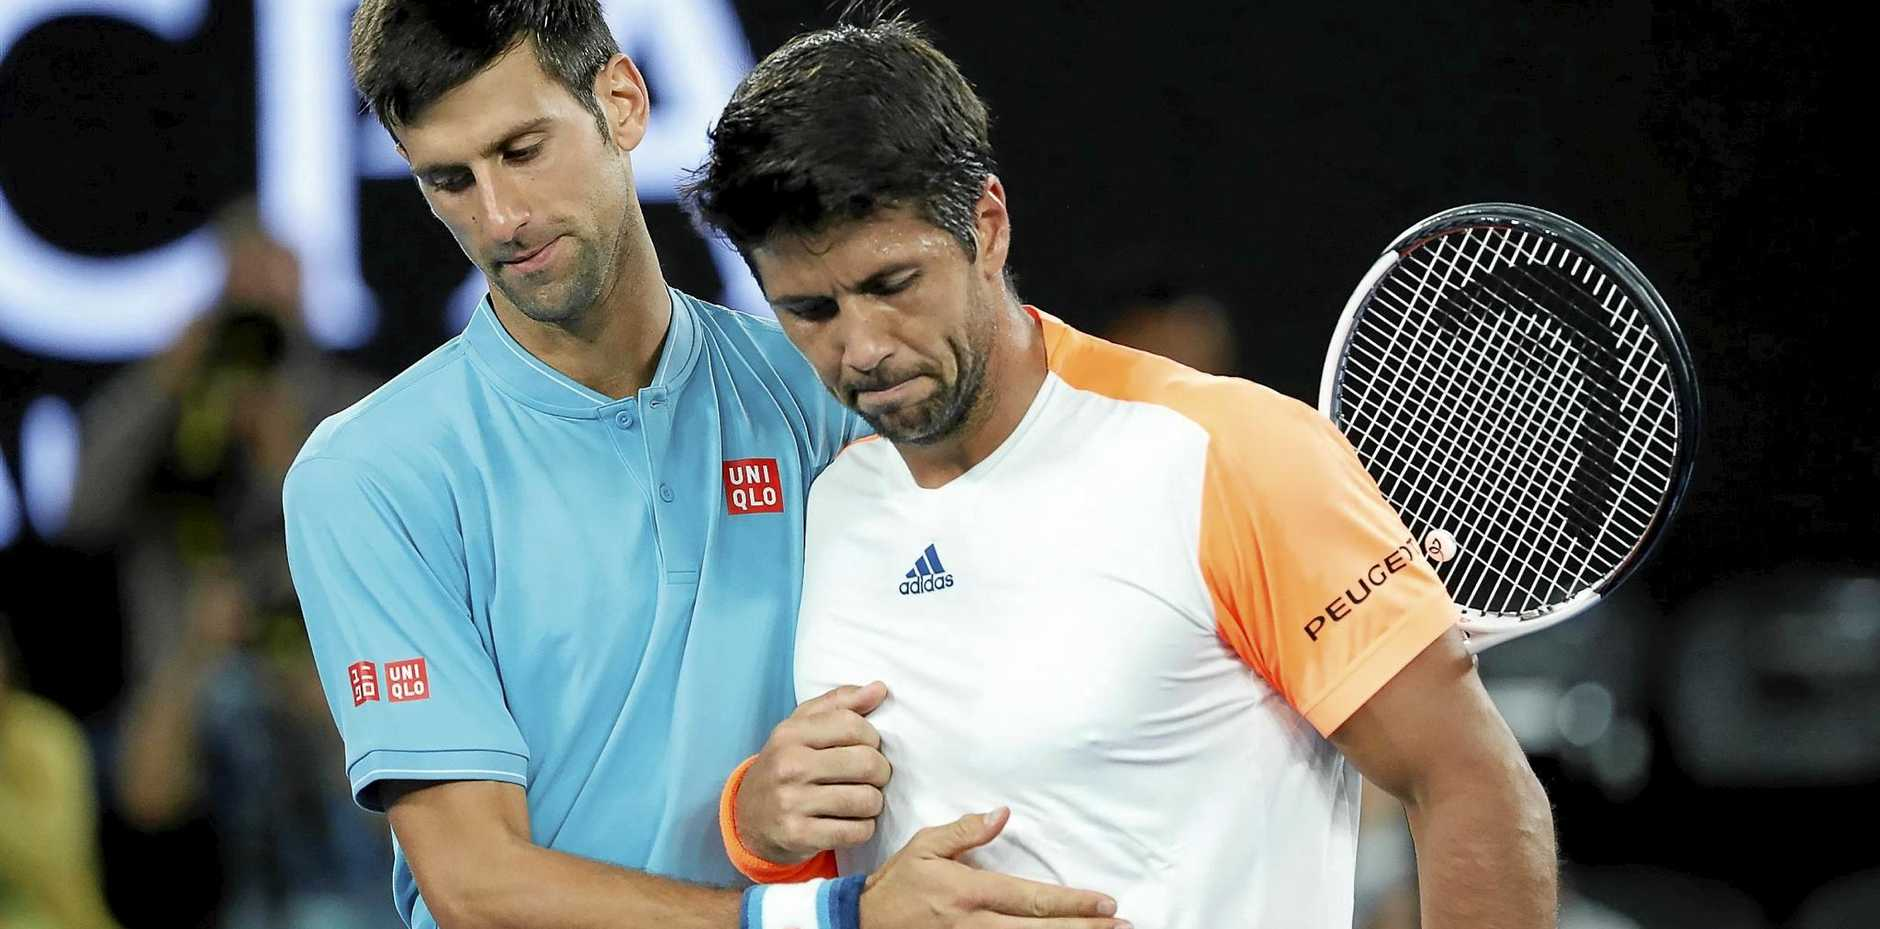 Novak Djokovic (left) of Serbia thanks Fernando Verdasco of Spain after their first-round match at the Australian Open.